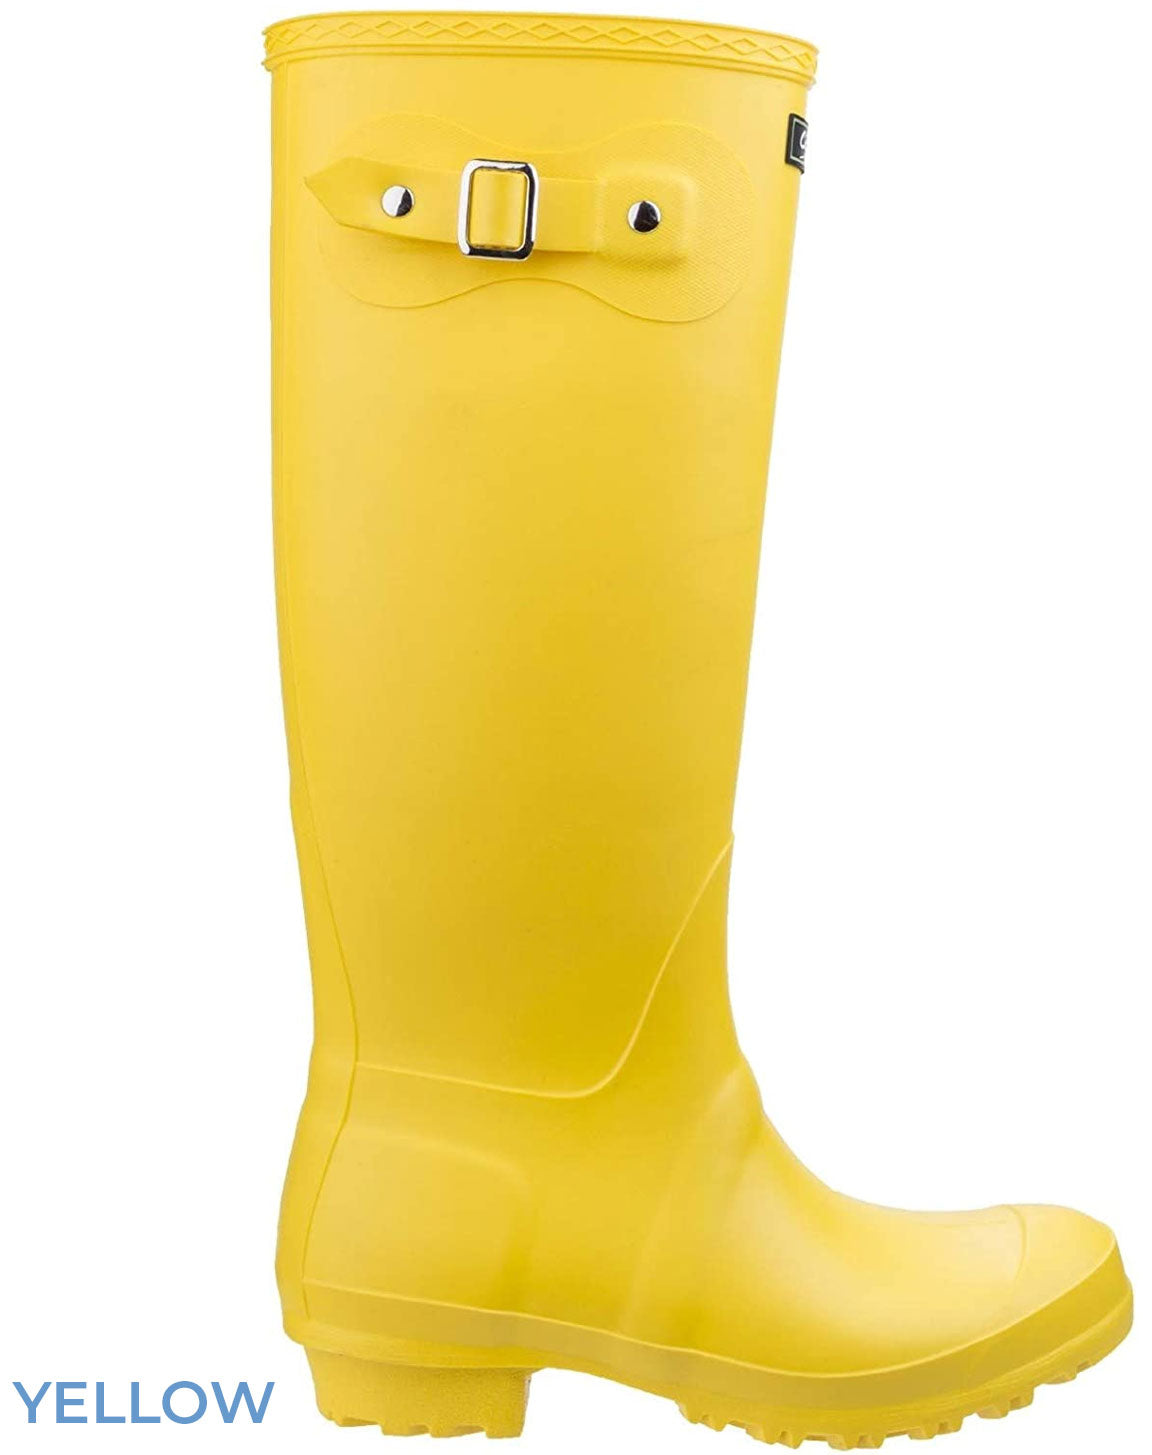 Yellow laides wellingtons